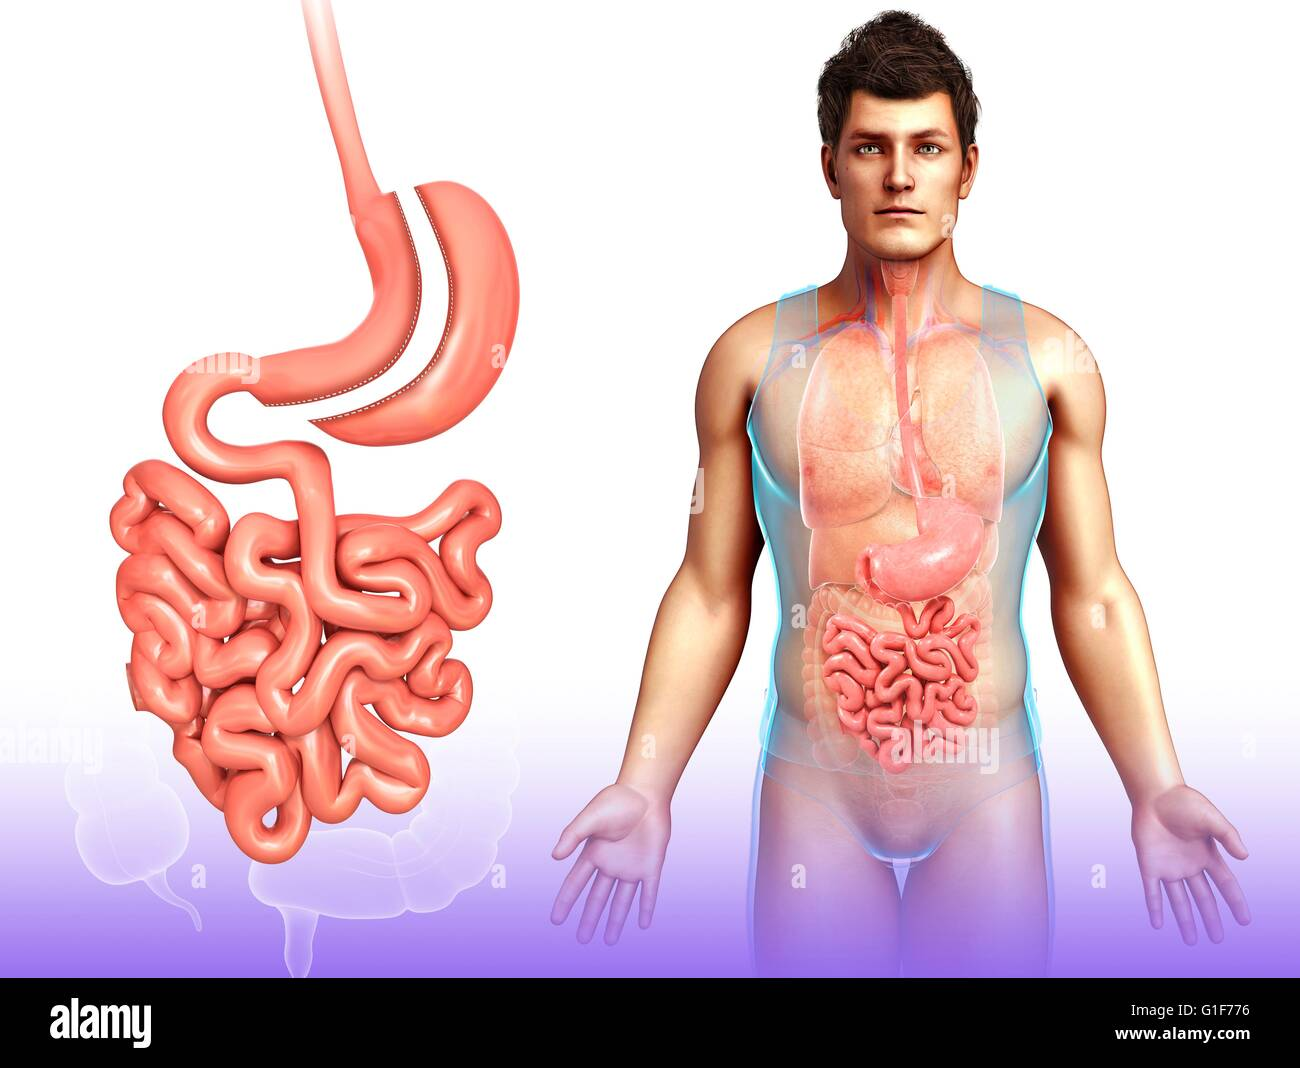 Sleeve Gastrectomy Surgical Weight Loss Surgery Illustration